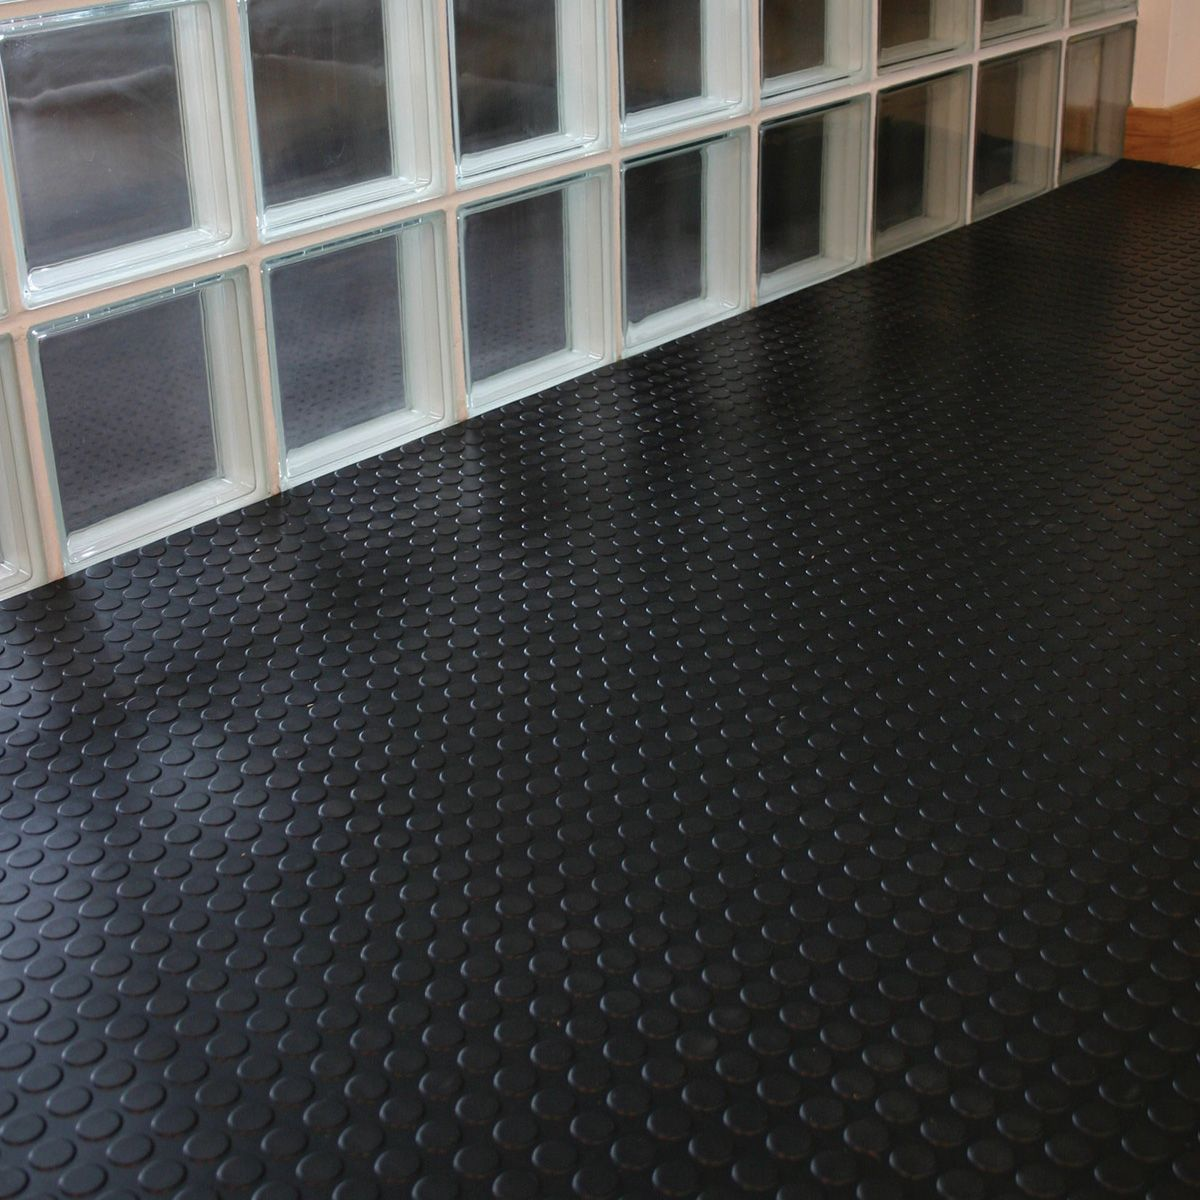 Rubber Floor Tiles Kitchen Similiar Rubber Deck Flooring Keywords